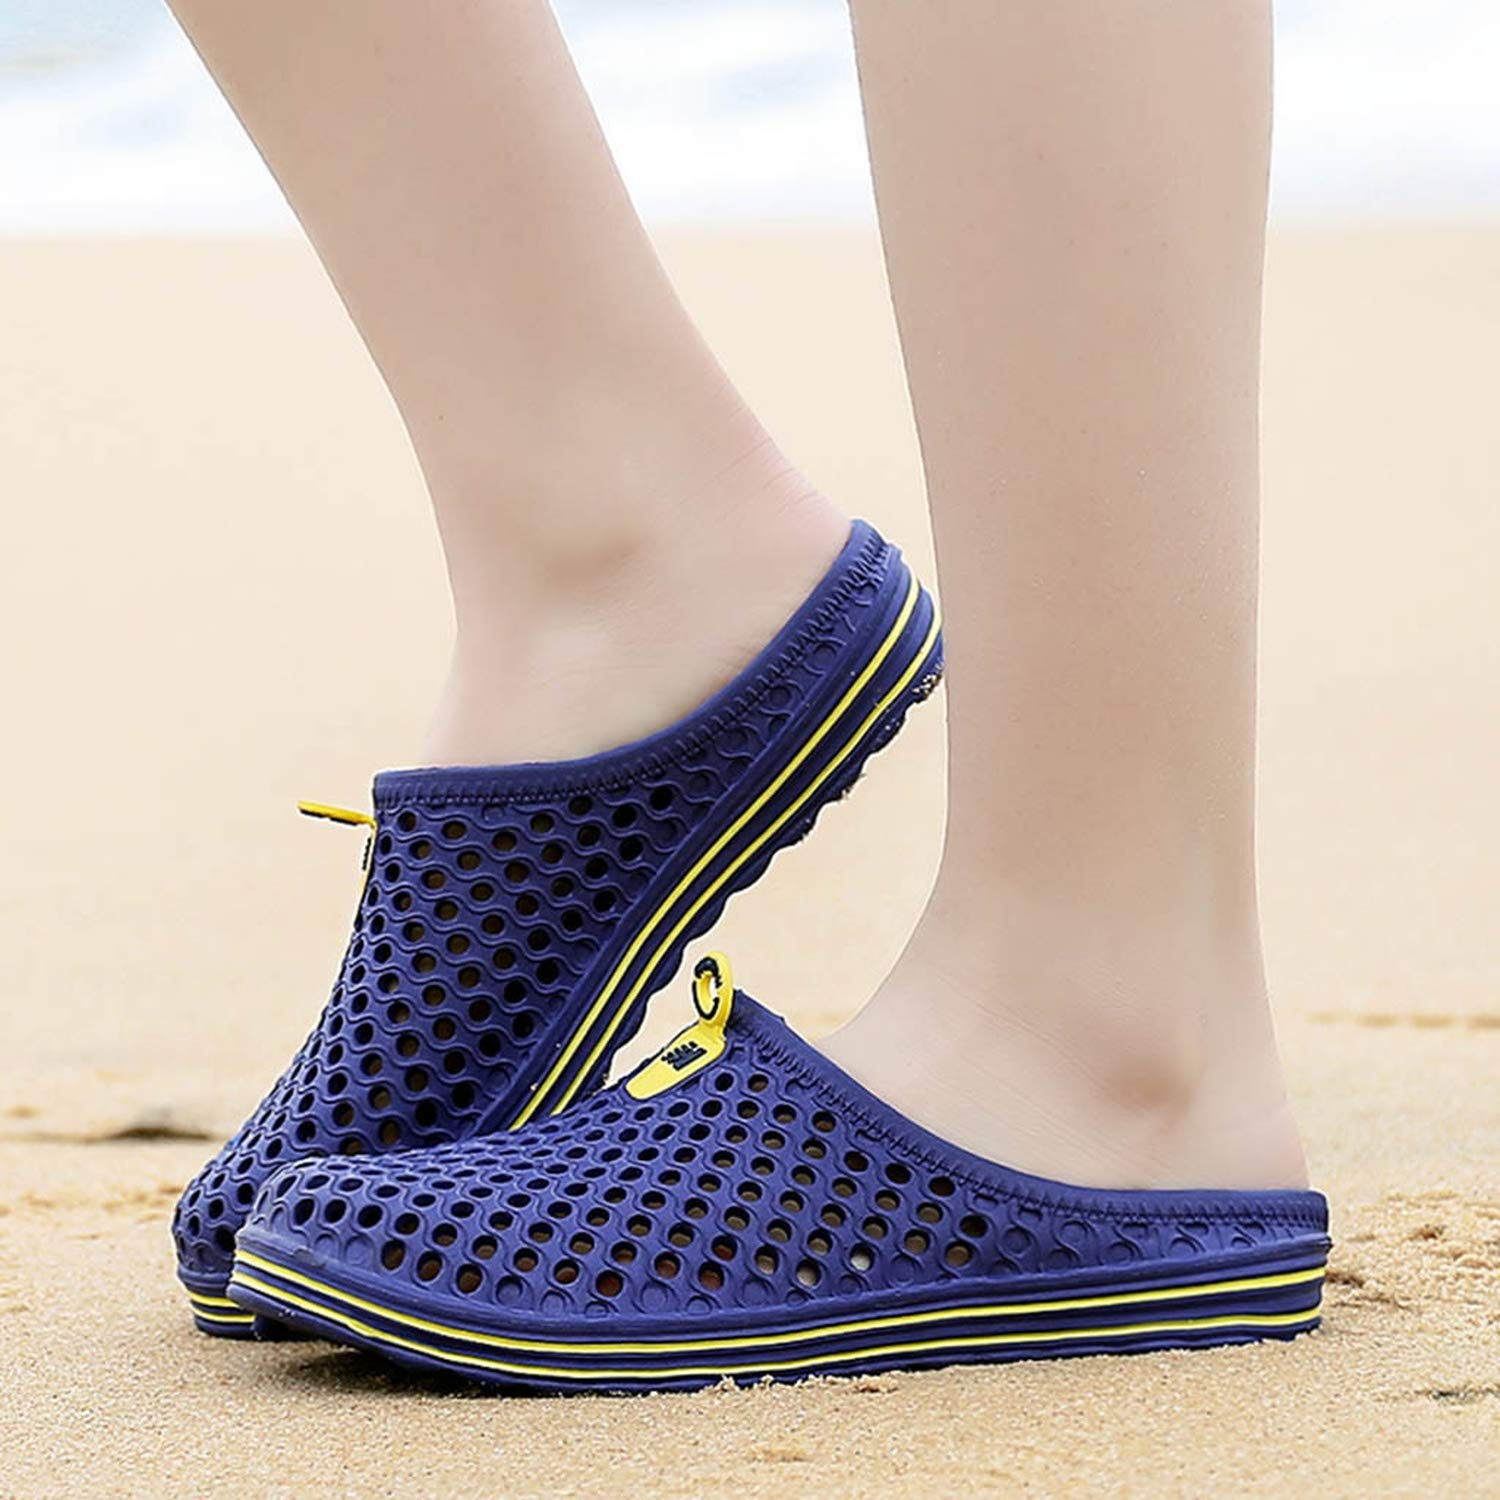 Mywine Mens Womens Beach Sandals Hollow Out Casual Breathable Slippers Flats Shoes Chaussure Plate Femme Printemps ETE,Blue,5.5